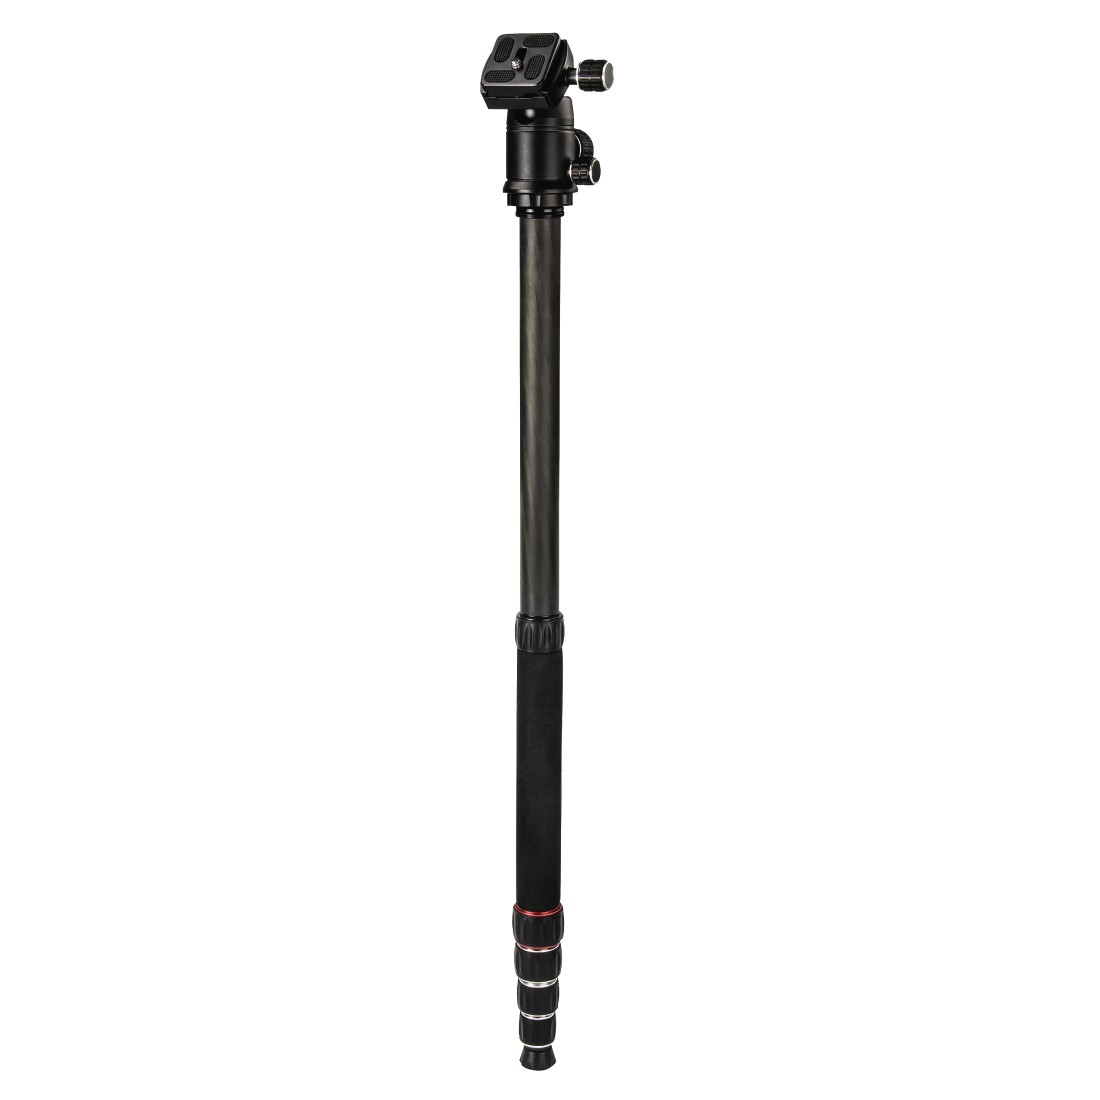 abx2 High-Res Image 2 - Hama, Professional Premium Duo Carbon Tripod, 153 - Ball